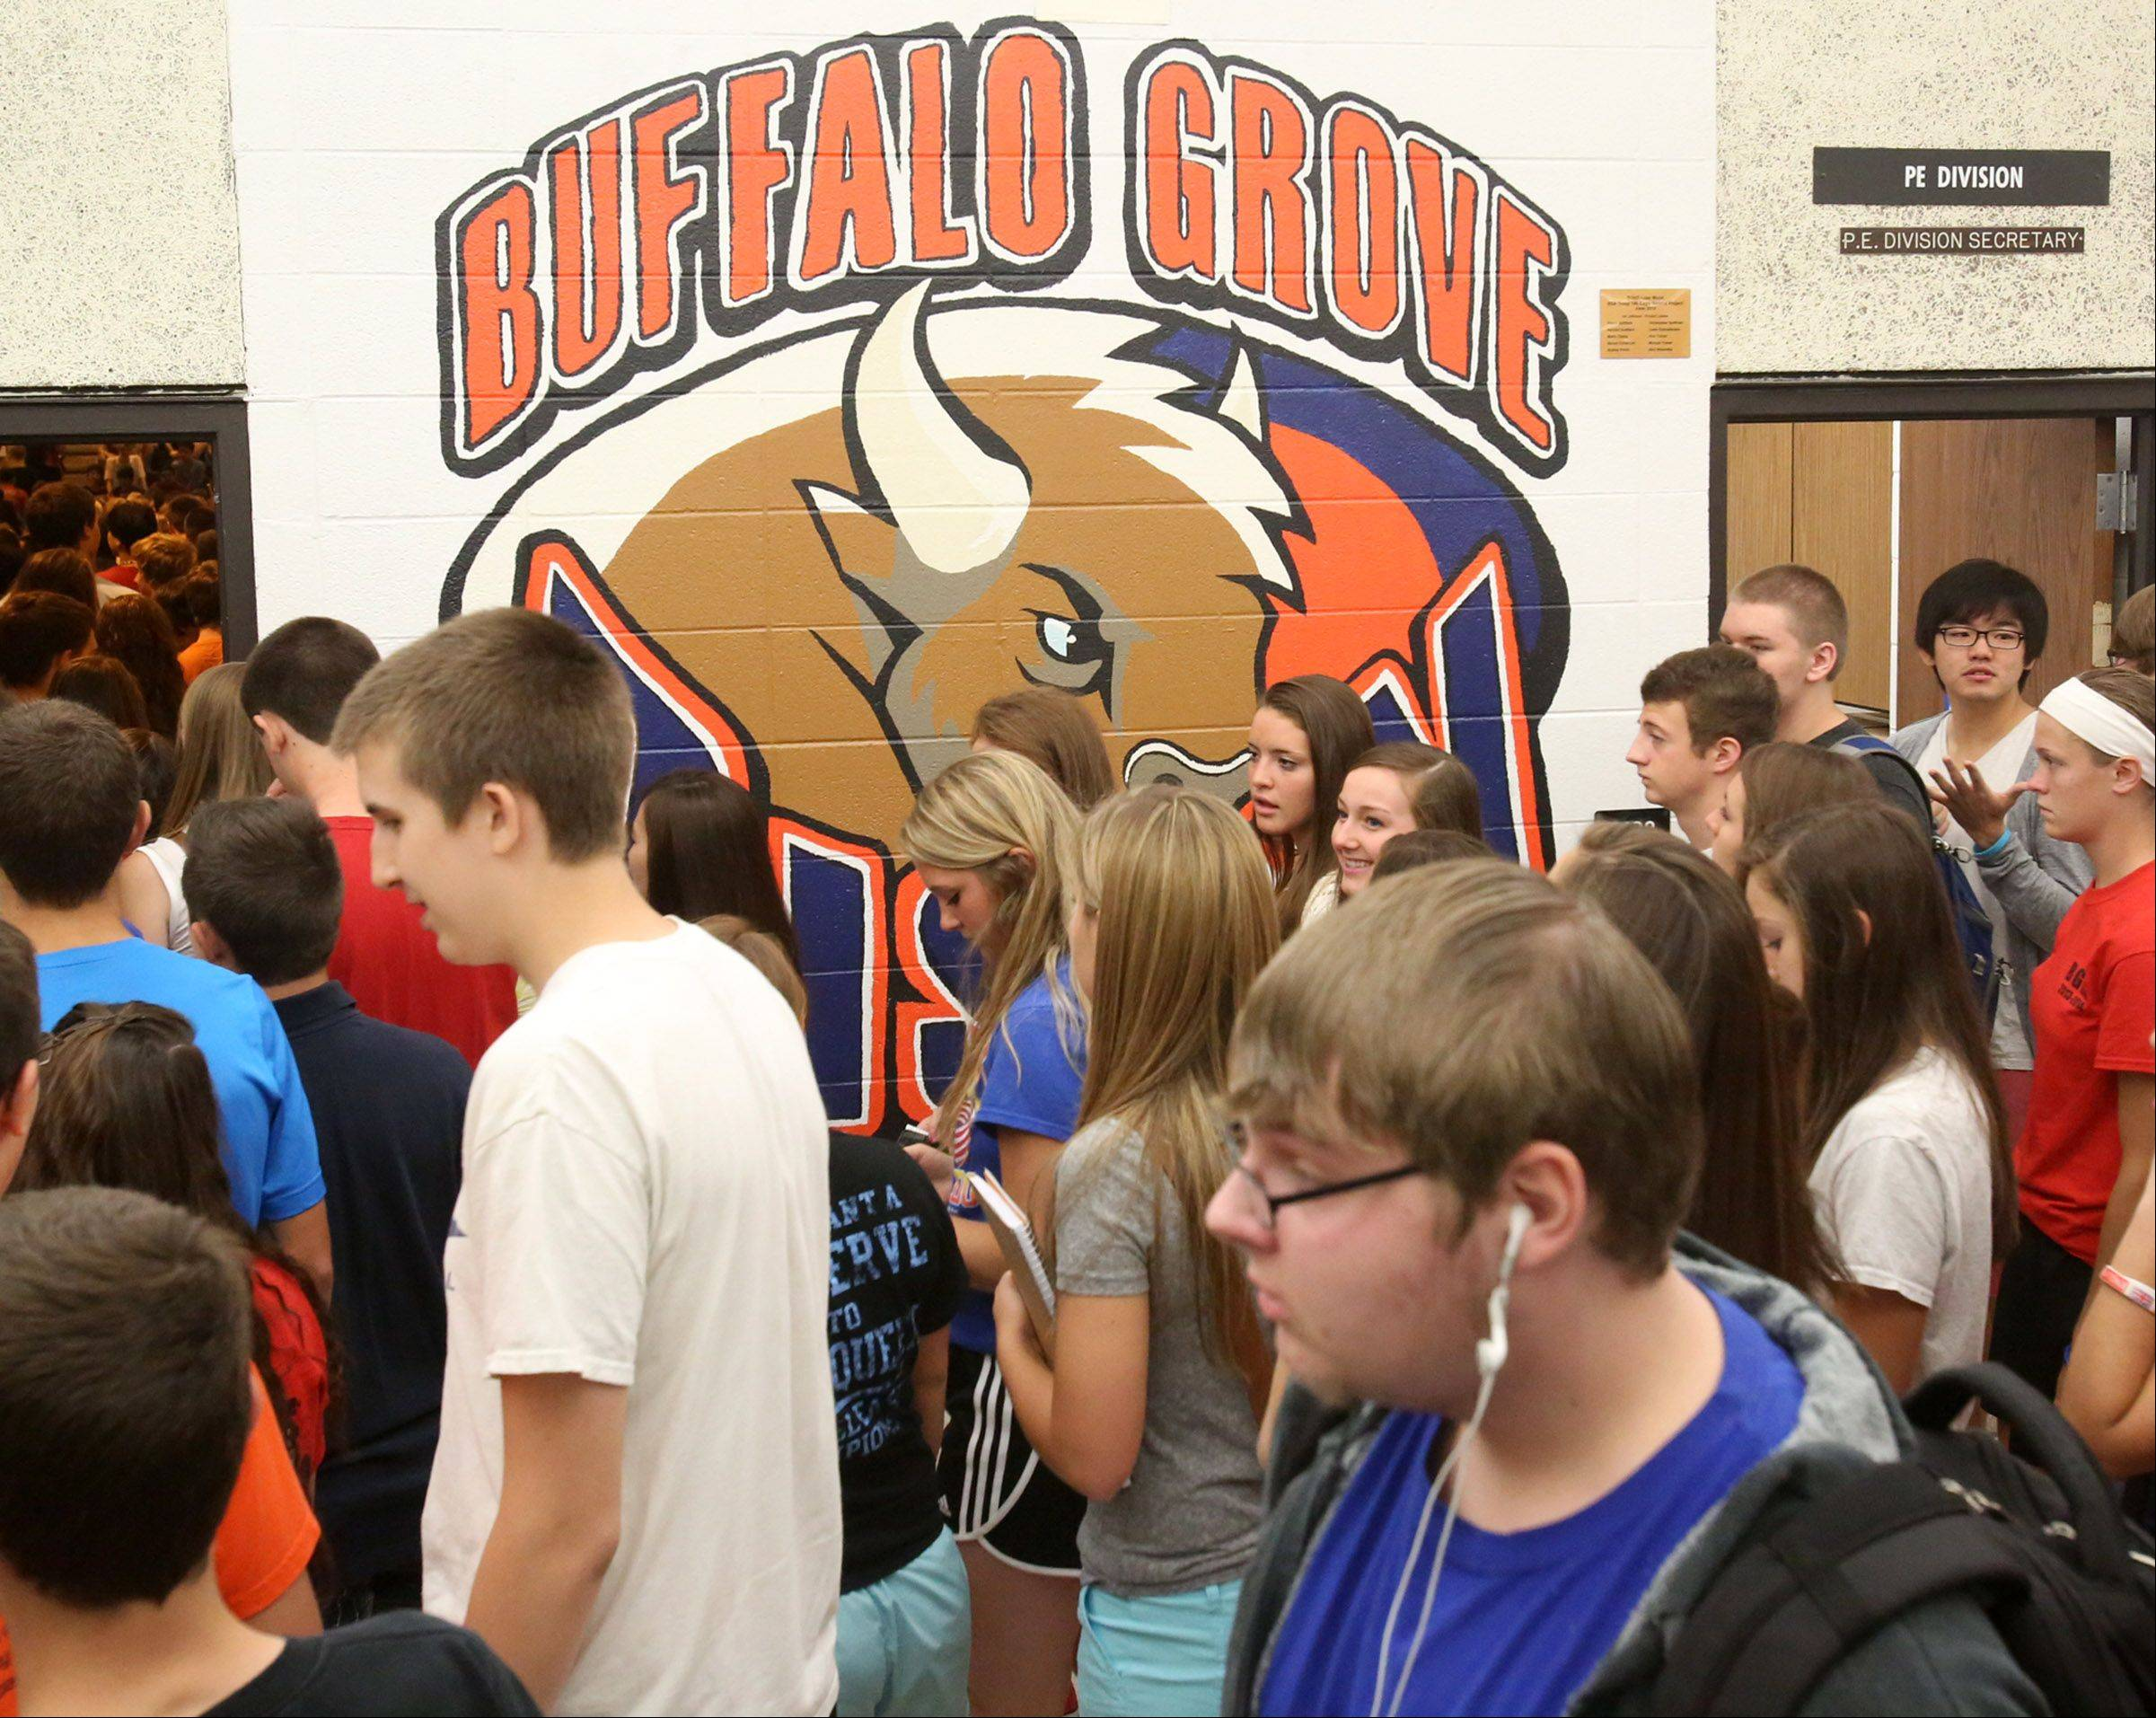 Students crowd the hallway during the first day at Buffalo Grove High School.